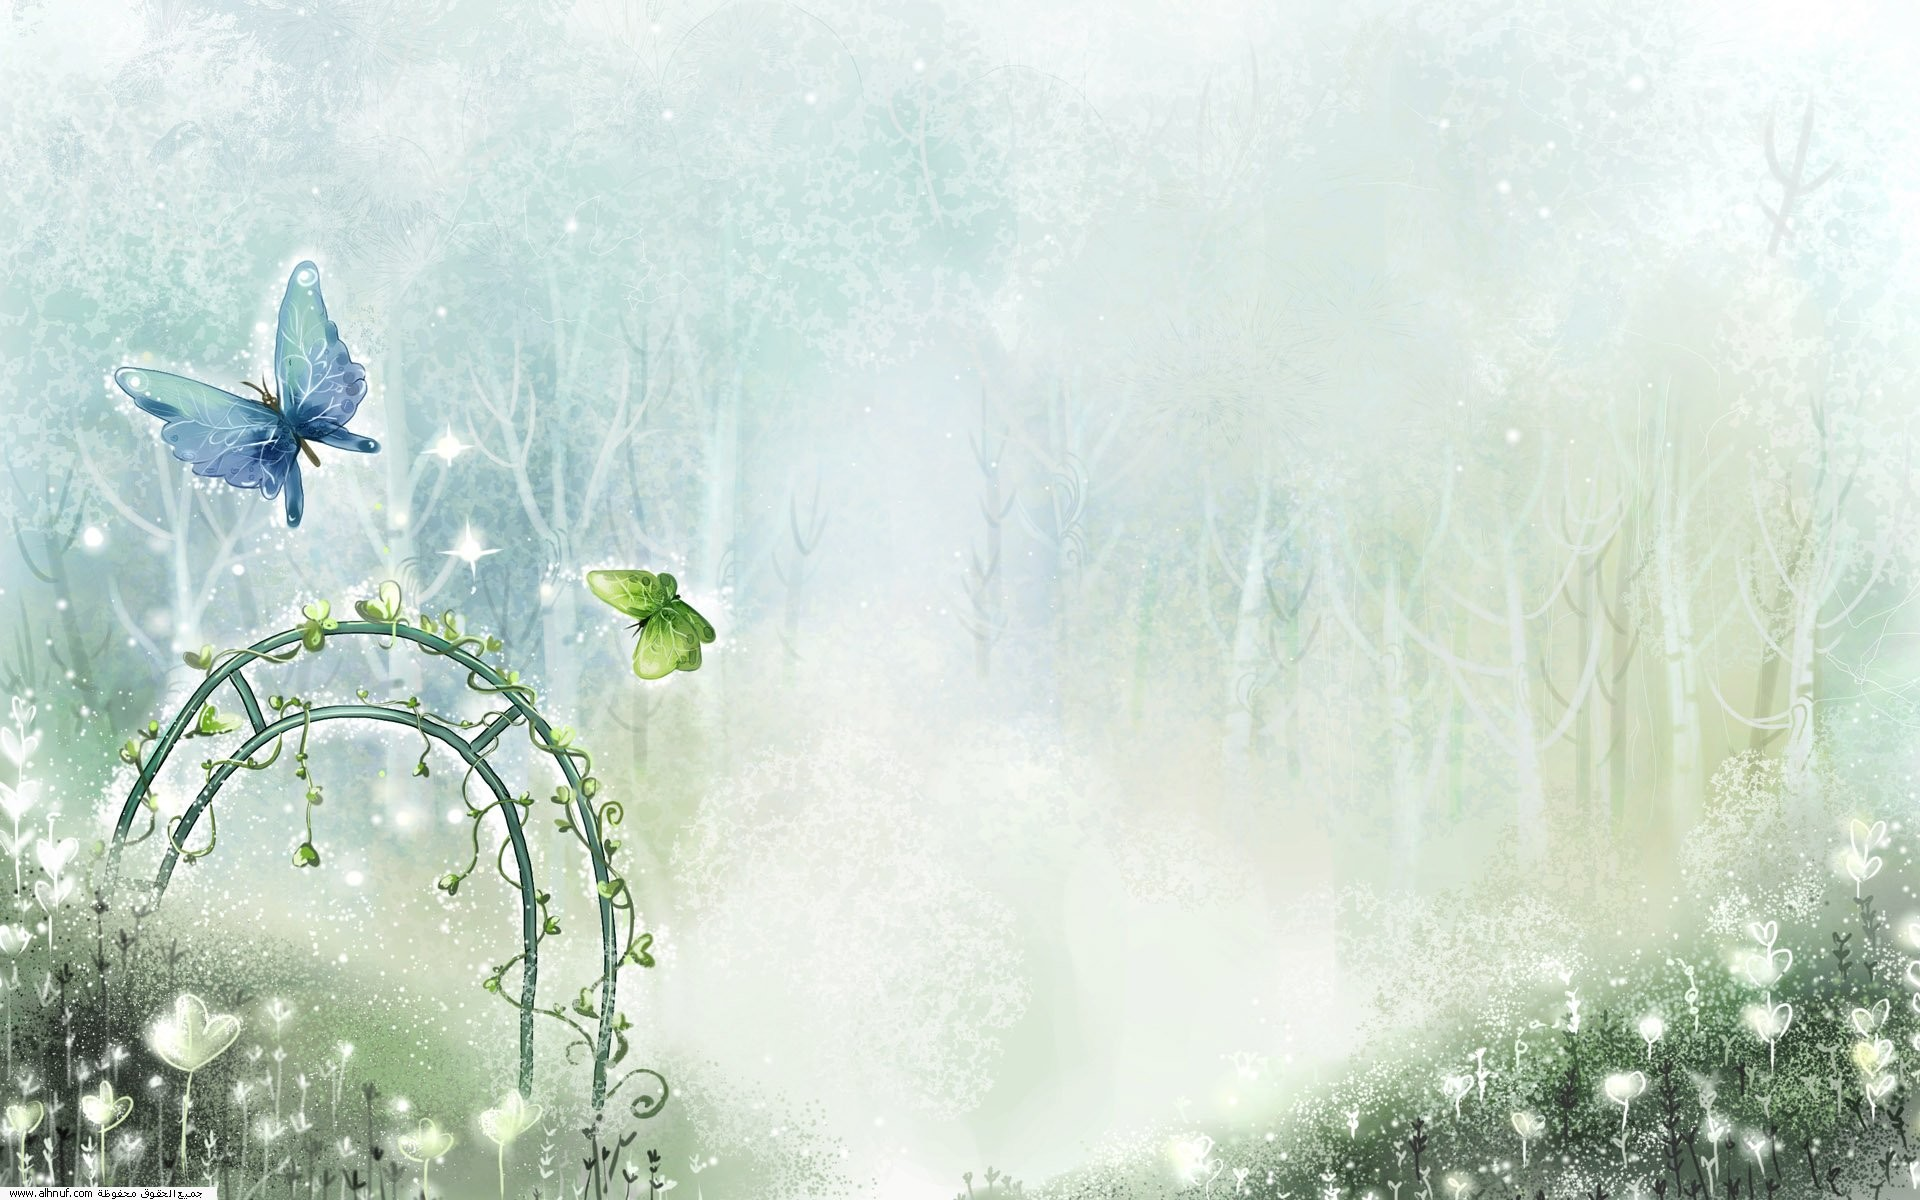 Images Of Snow Falling Wallpaper Fairytale Background 55 Images